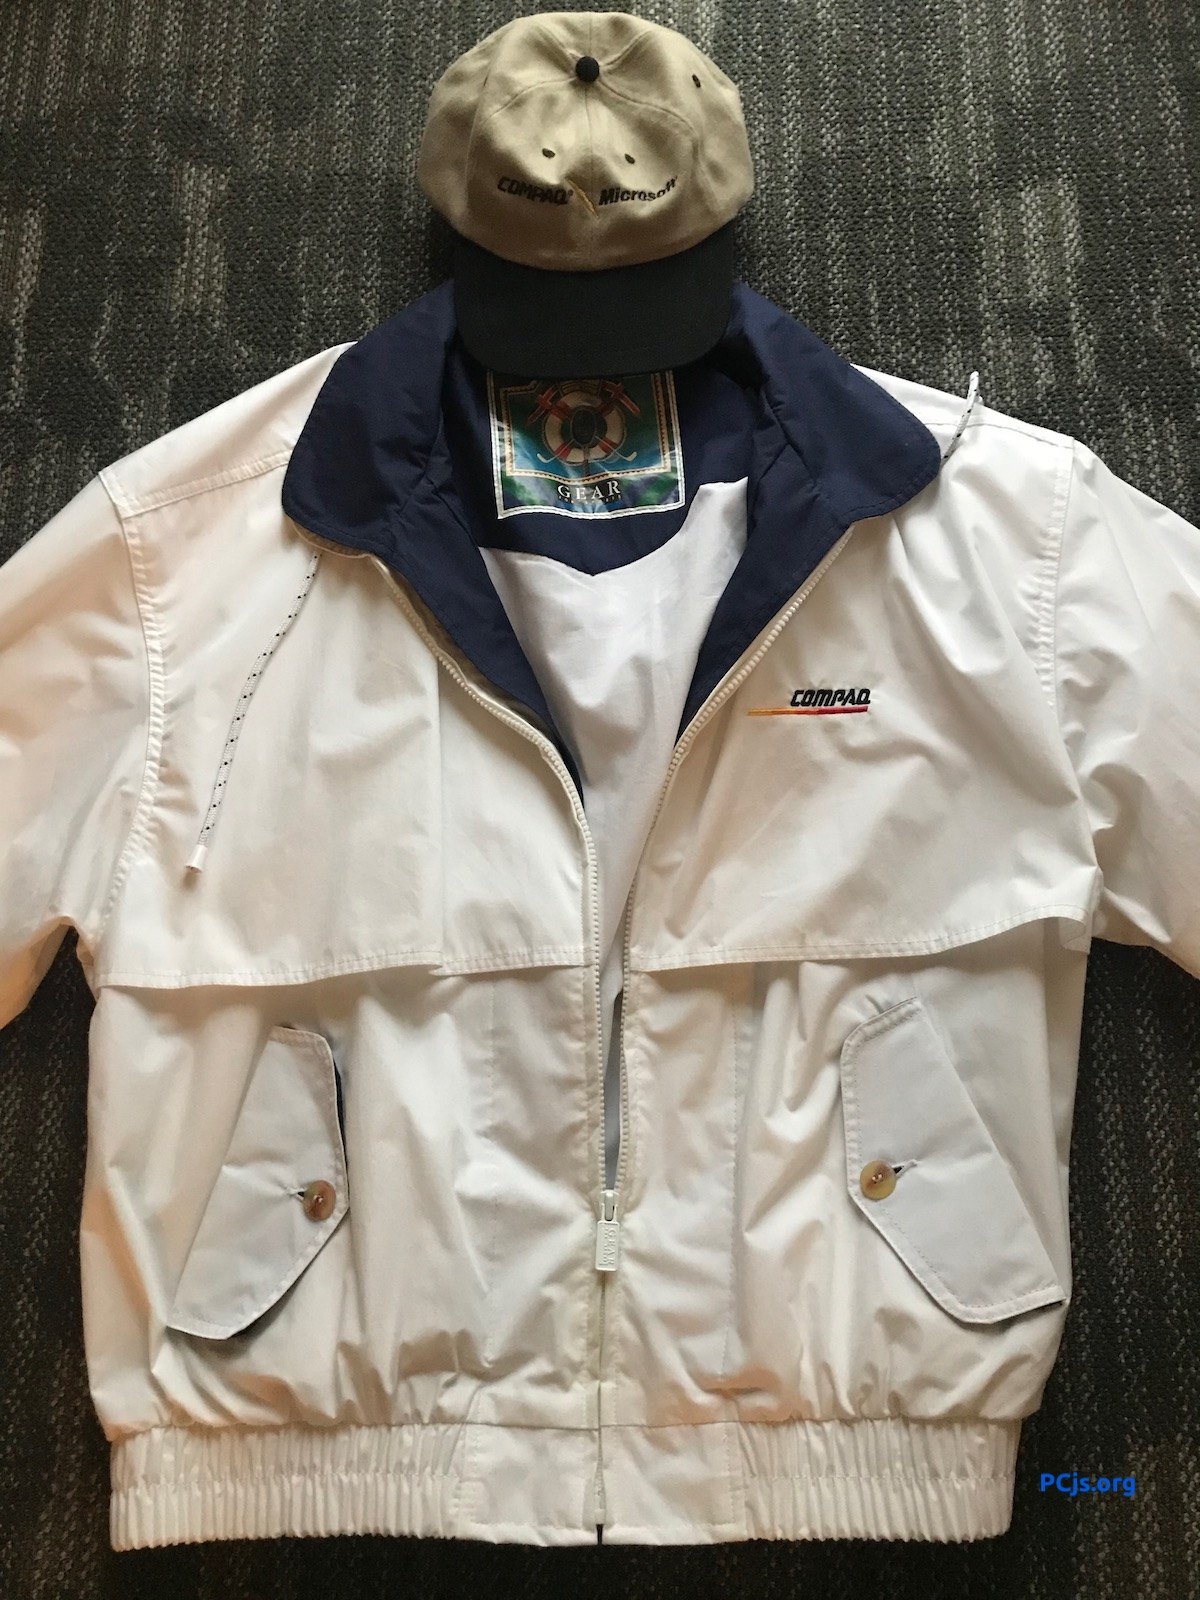 COMPAQ Jacket and Cap